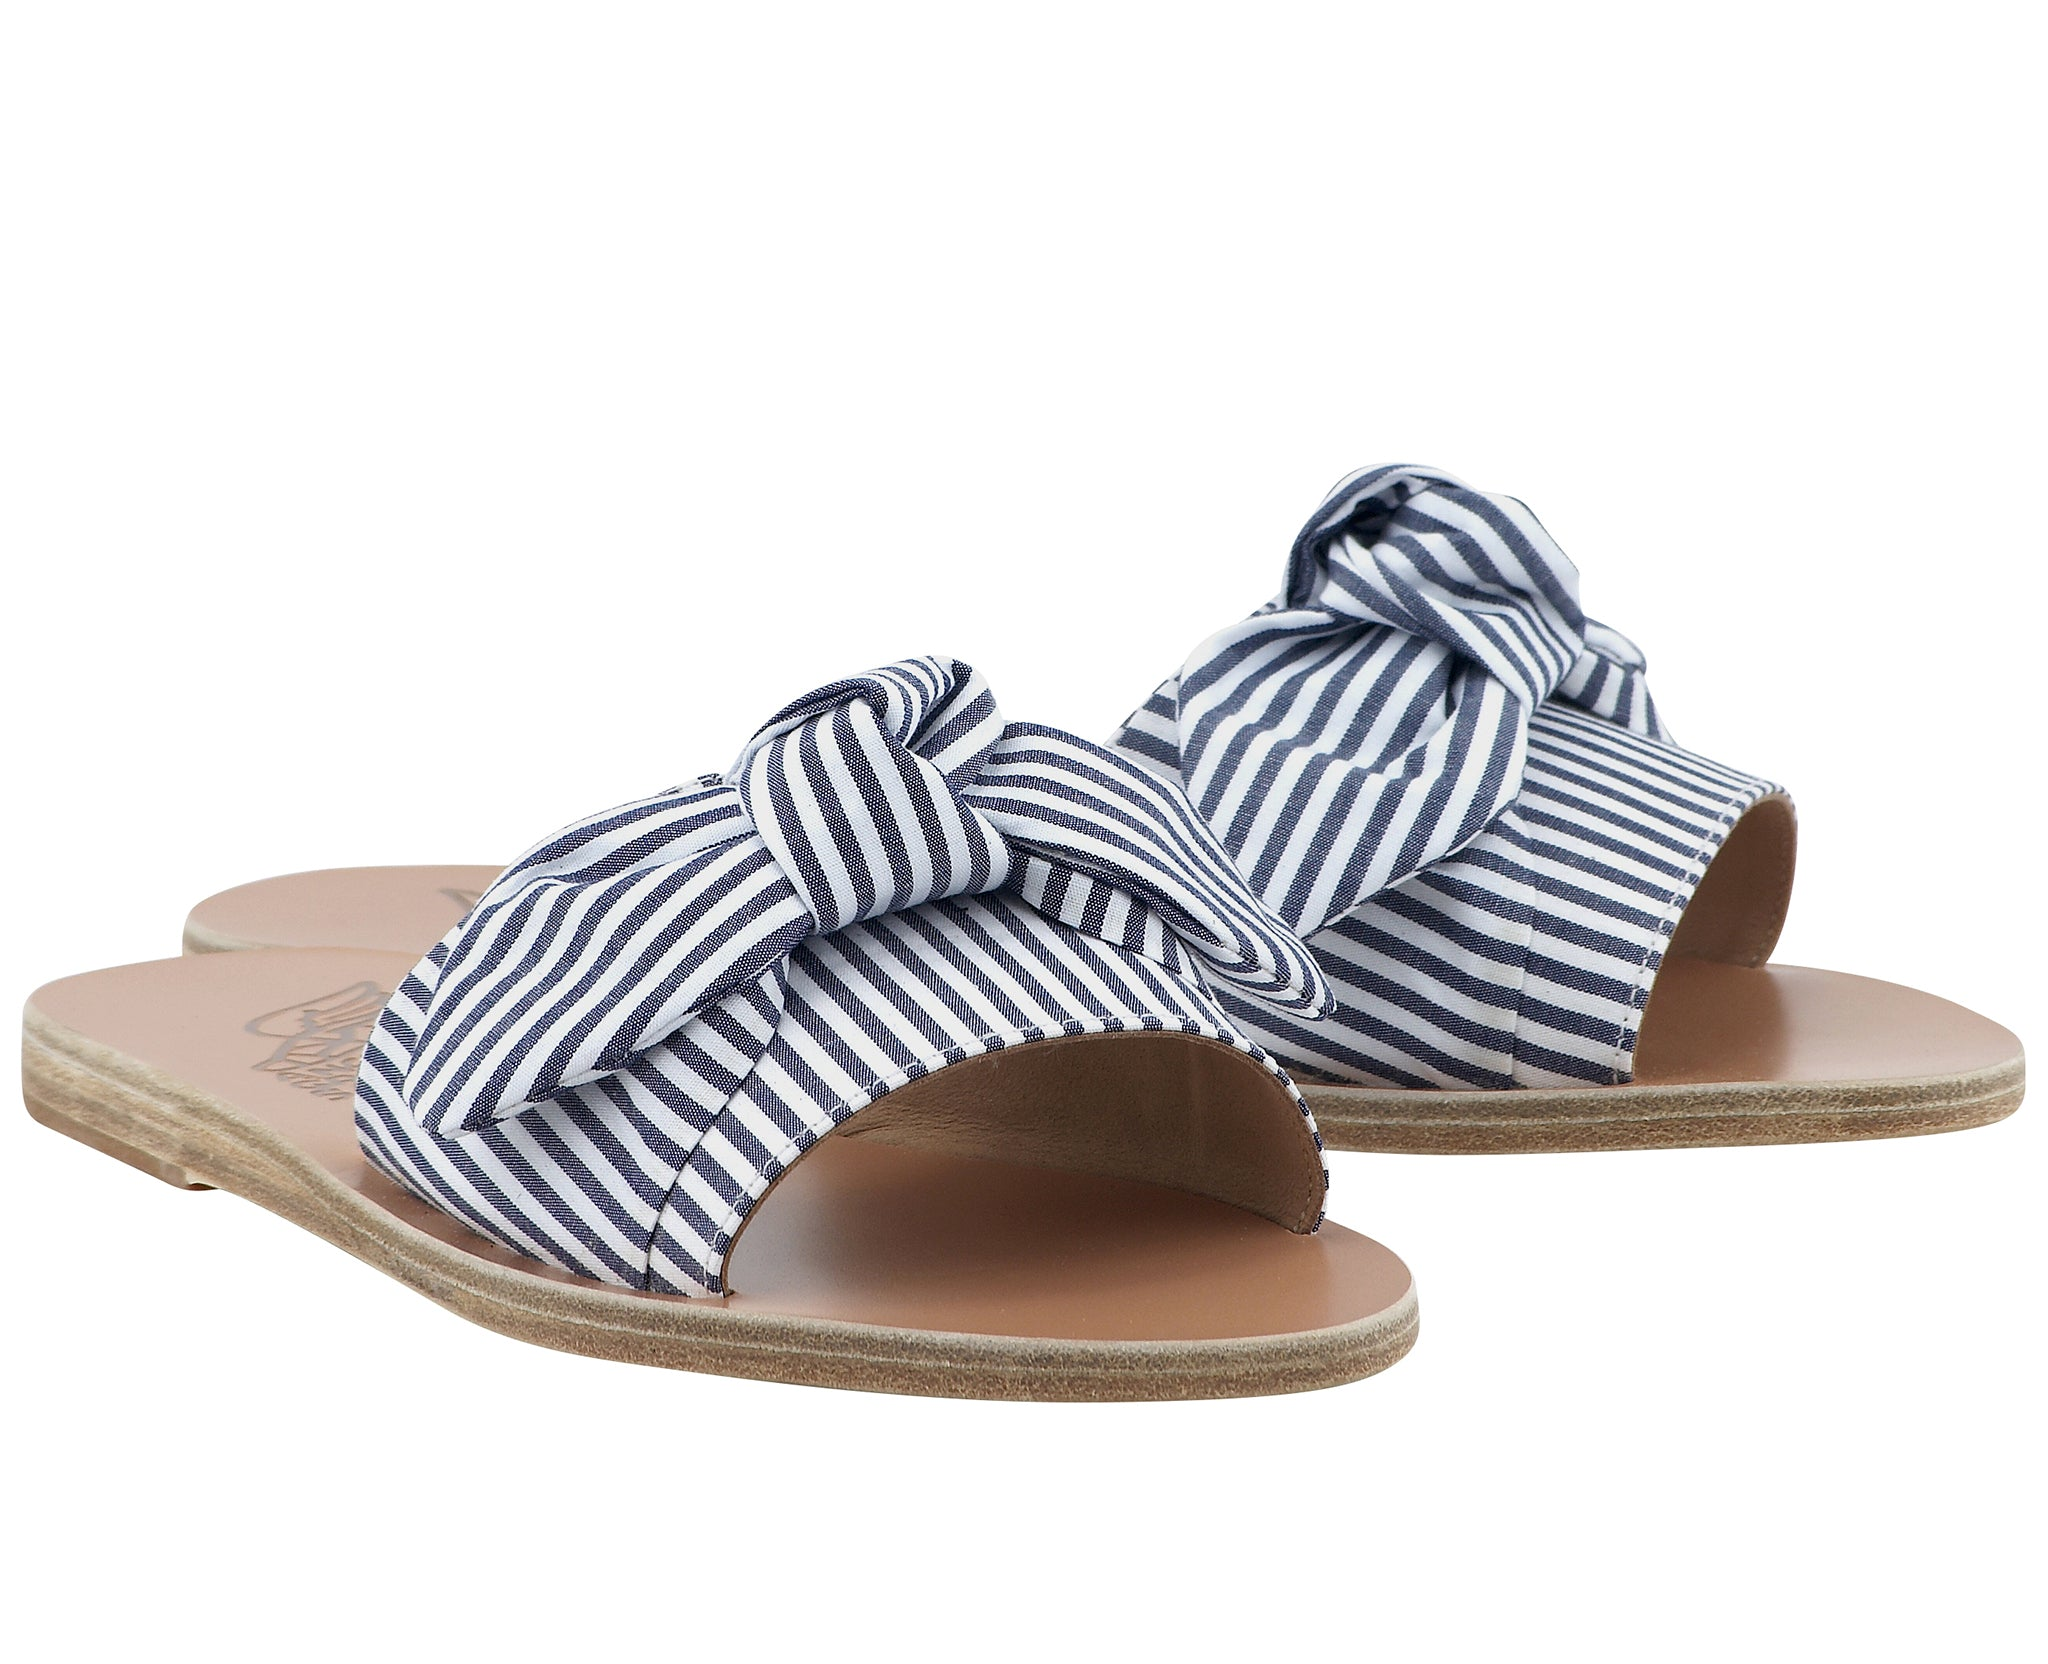 Taygete Bow Blue Stripes